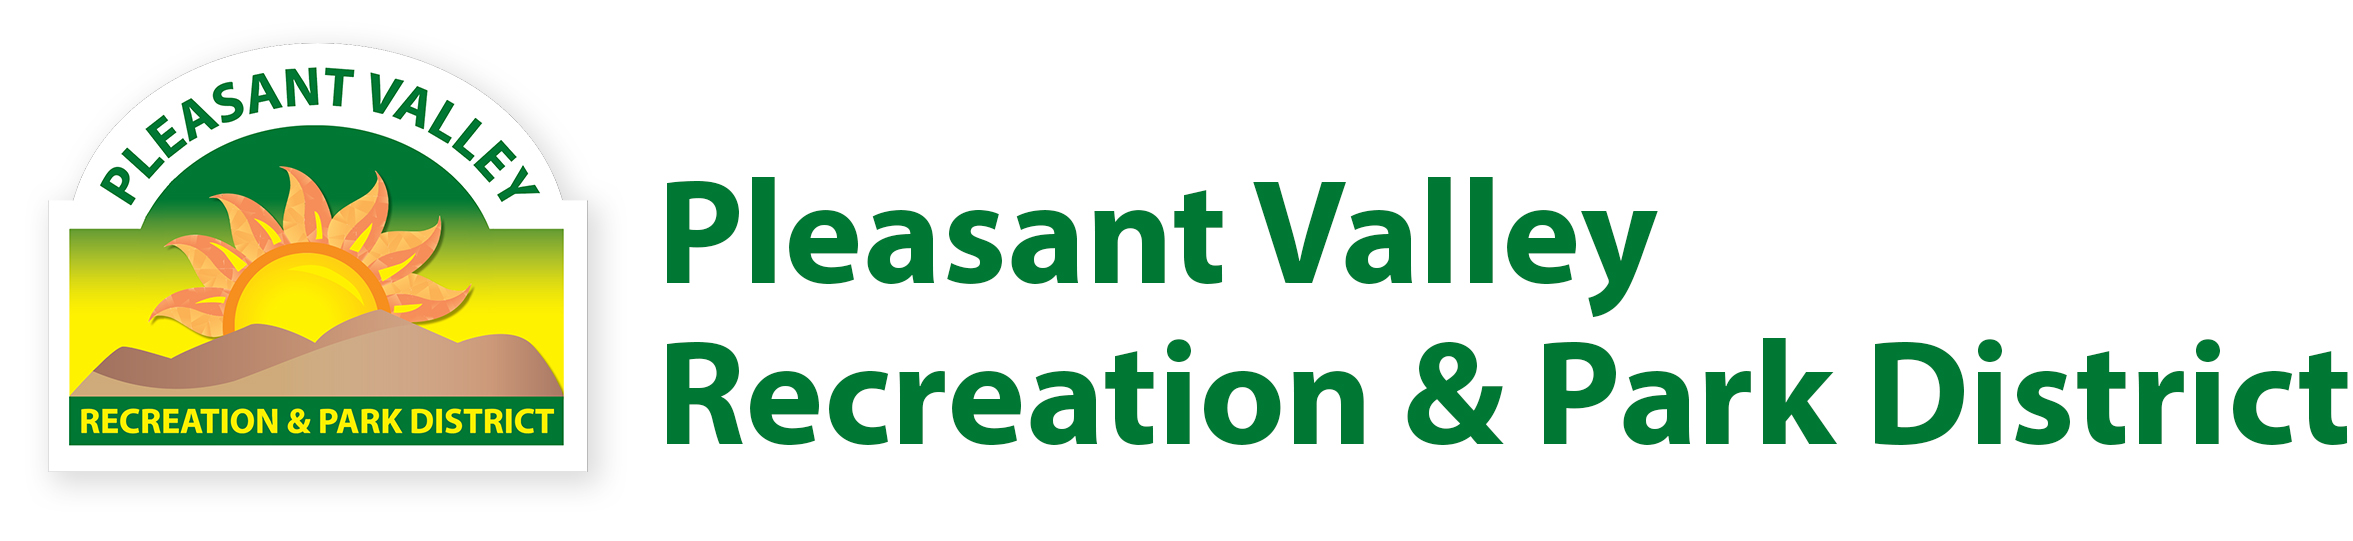 Pleasant Valley Recreation & Park District